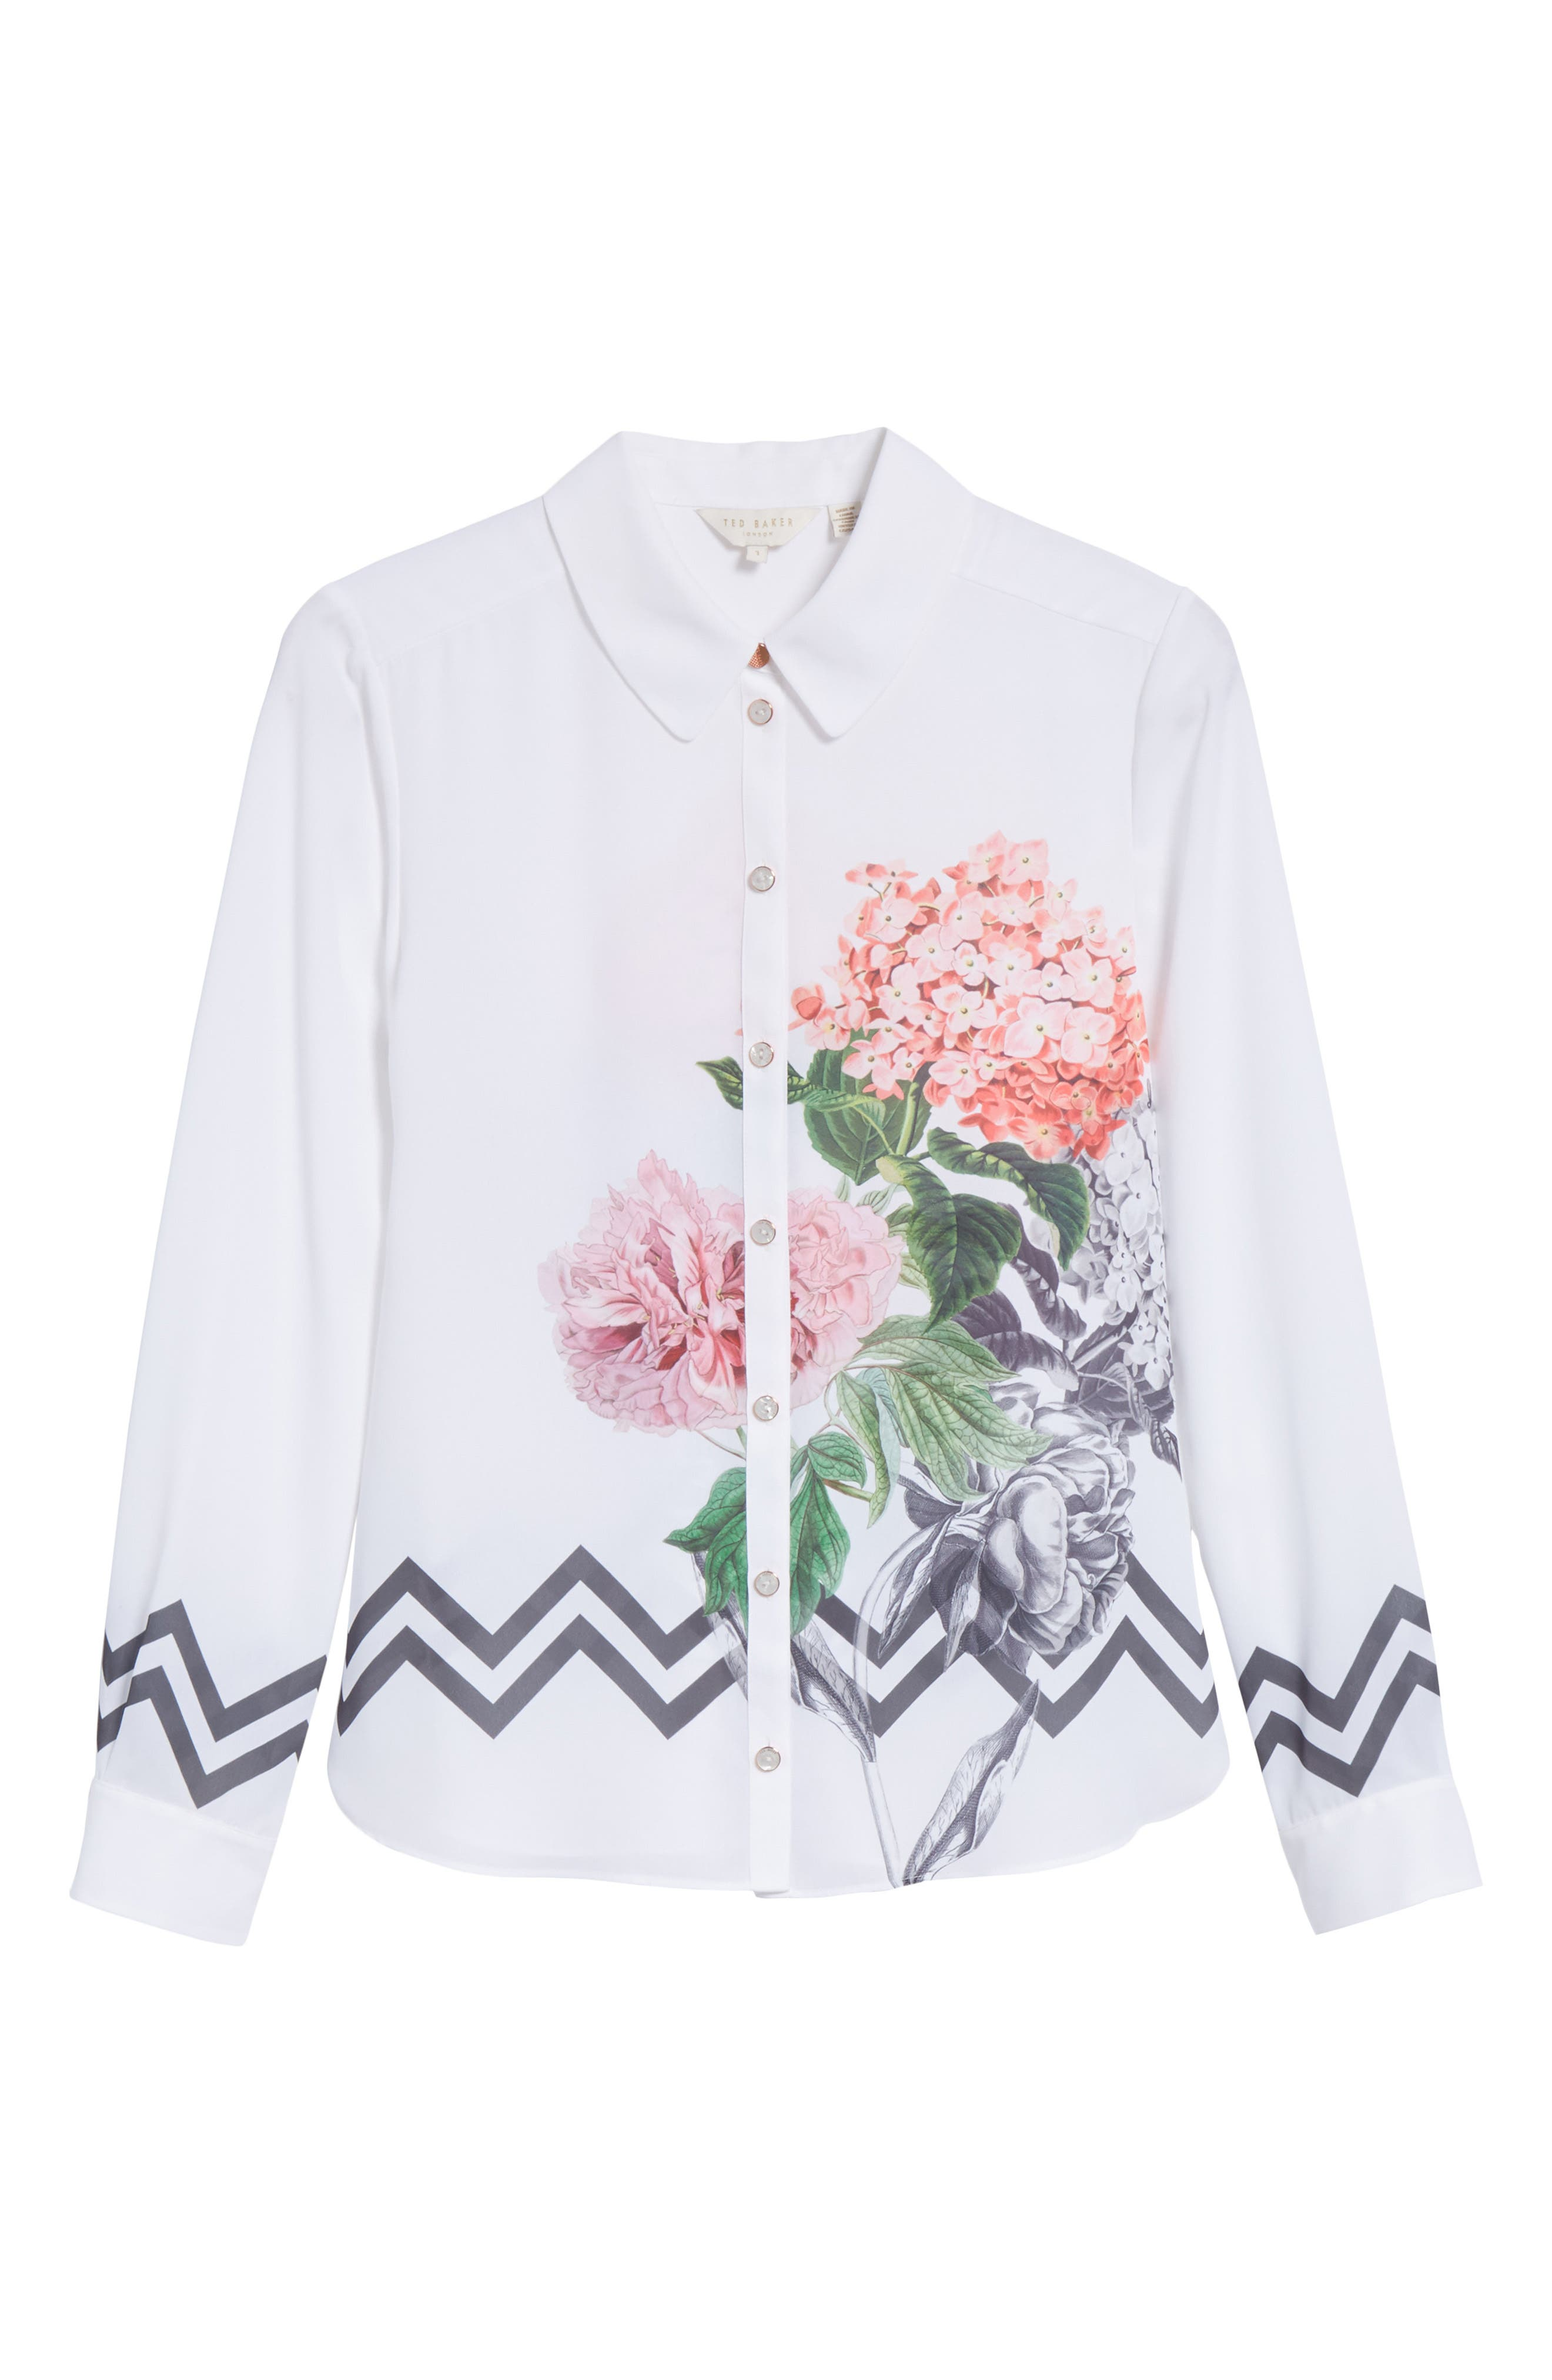 Palace Gardens Shirt,                             Alternate thumbnail 6, color,                             White